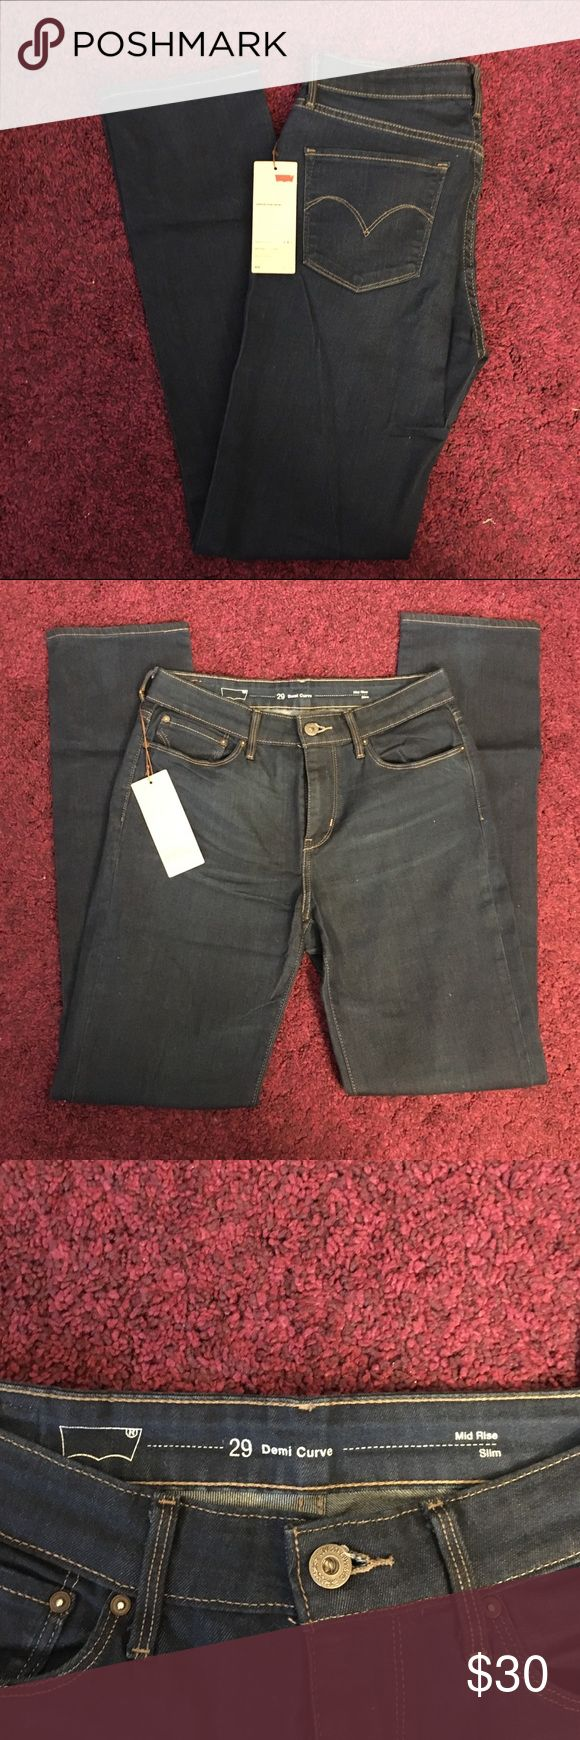 NWT Levi's Demi Curve Slim/Skinny NWT, never worn! Size 29 x 32. Demi curve is a great fit for a girl with a more accentuated hourglass figure. Medium-Dark blue wash Levi's Jeans Skinny